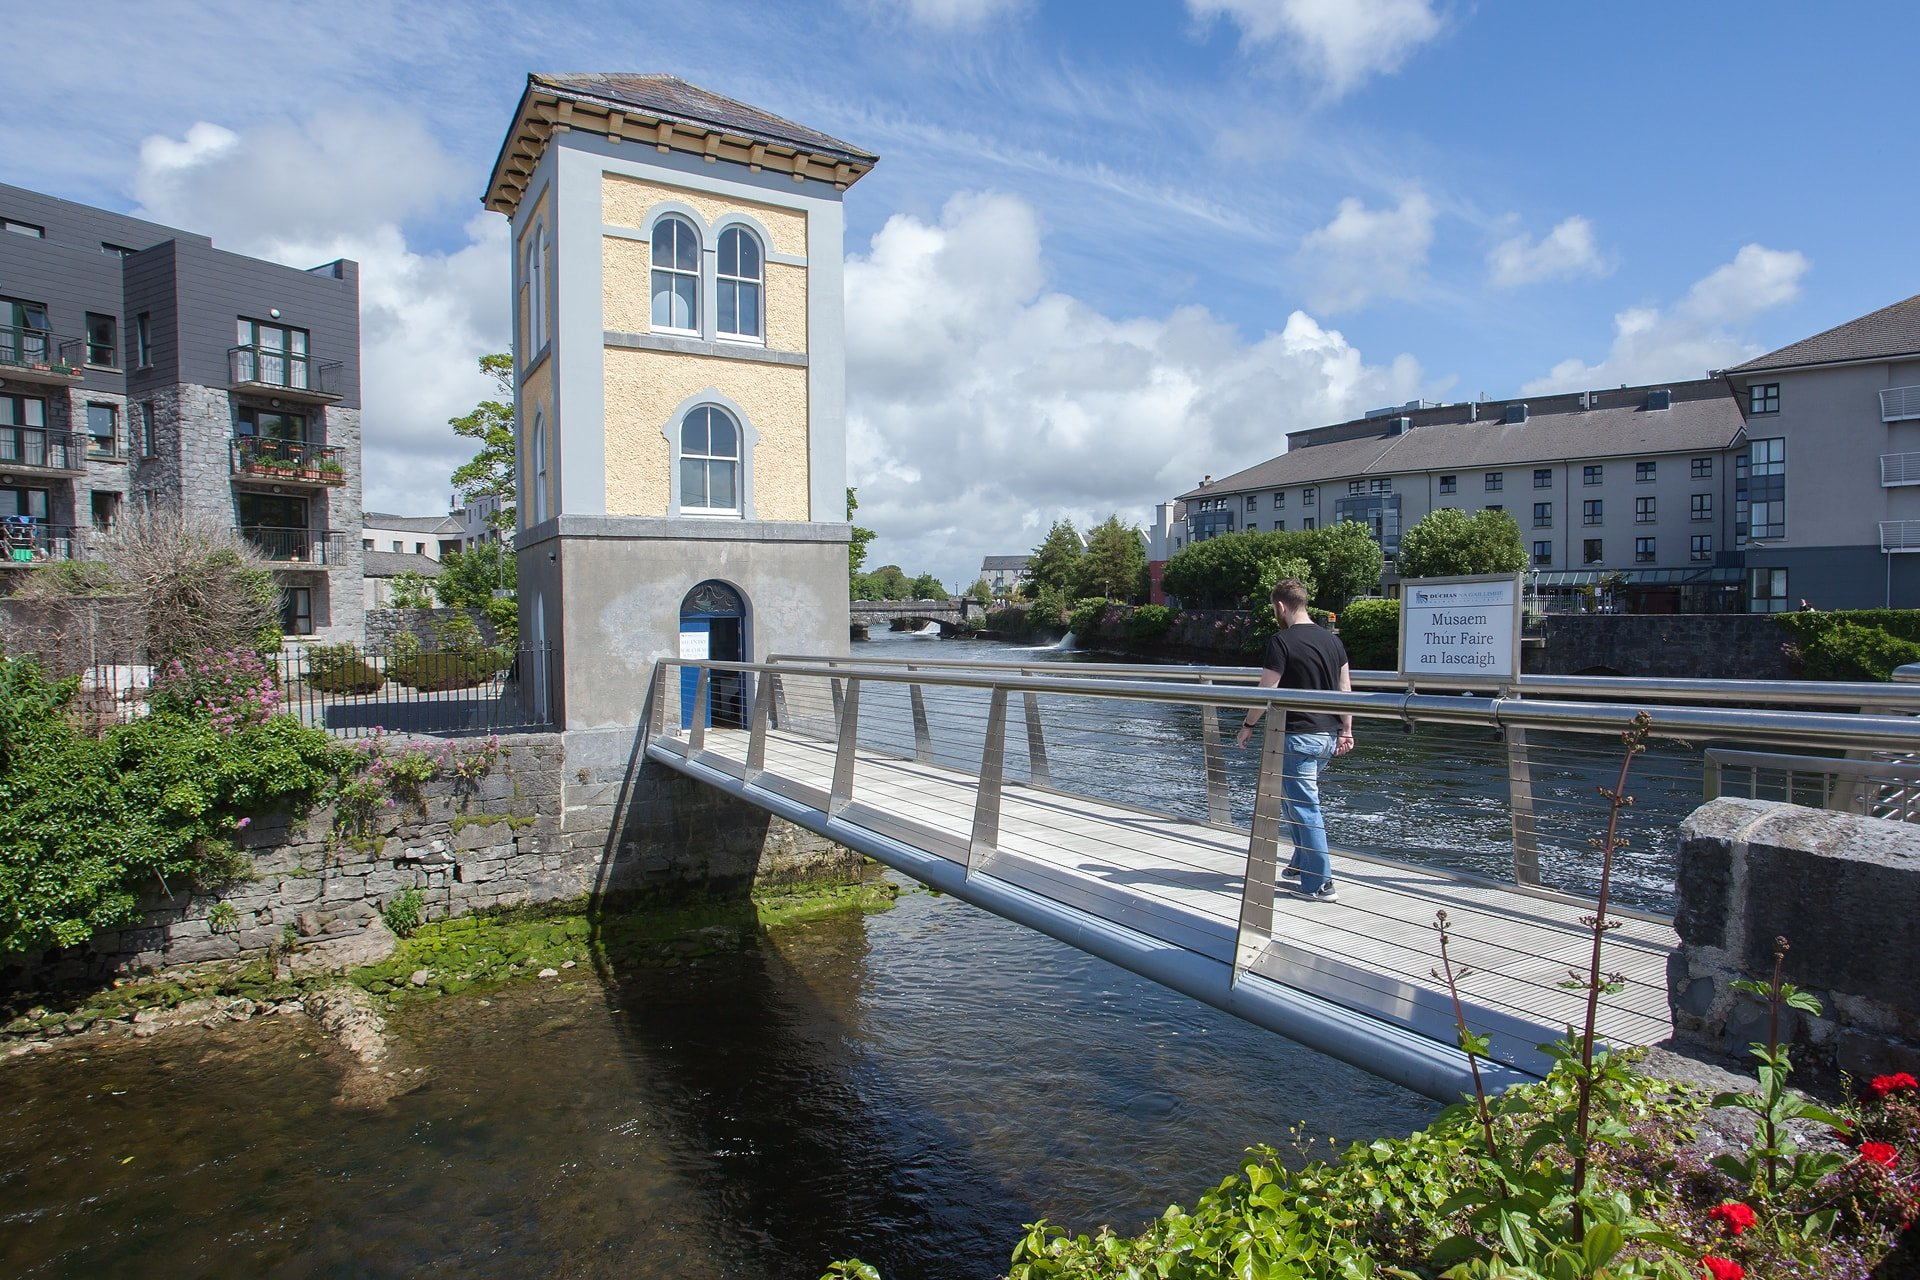 Fishery Watch Tower Museum in Galway City